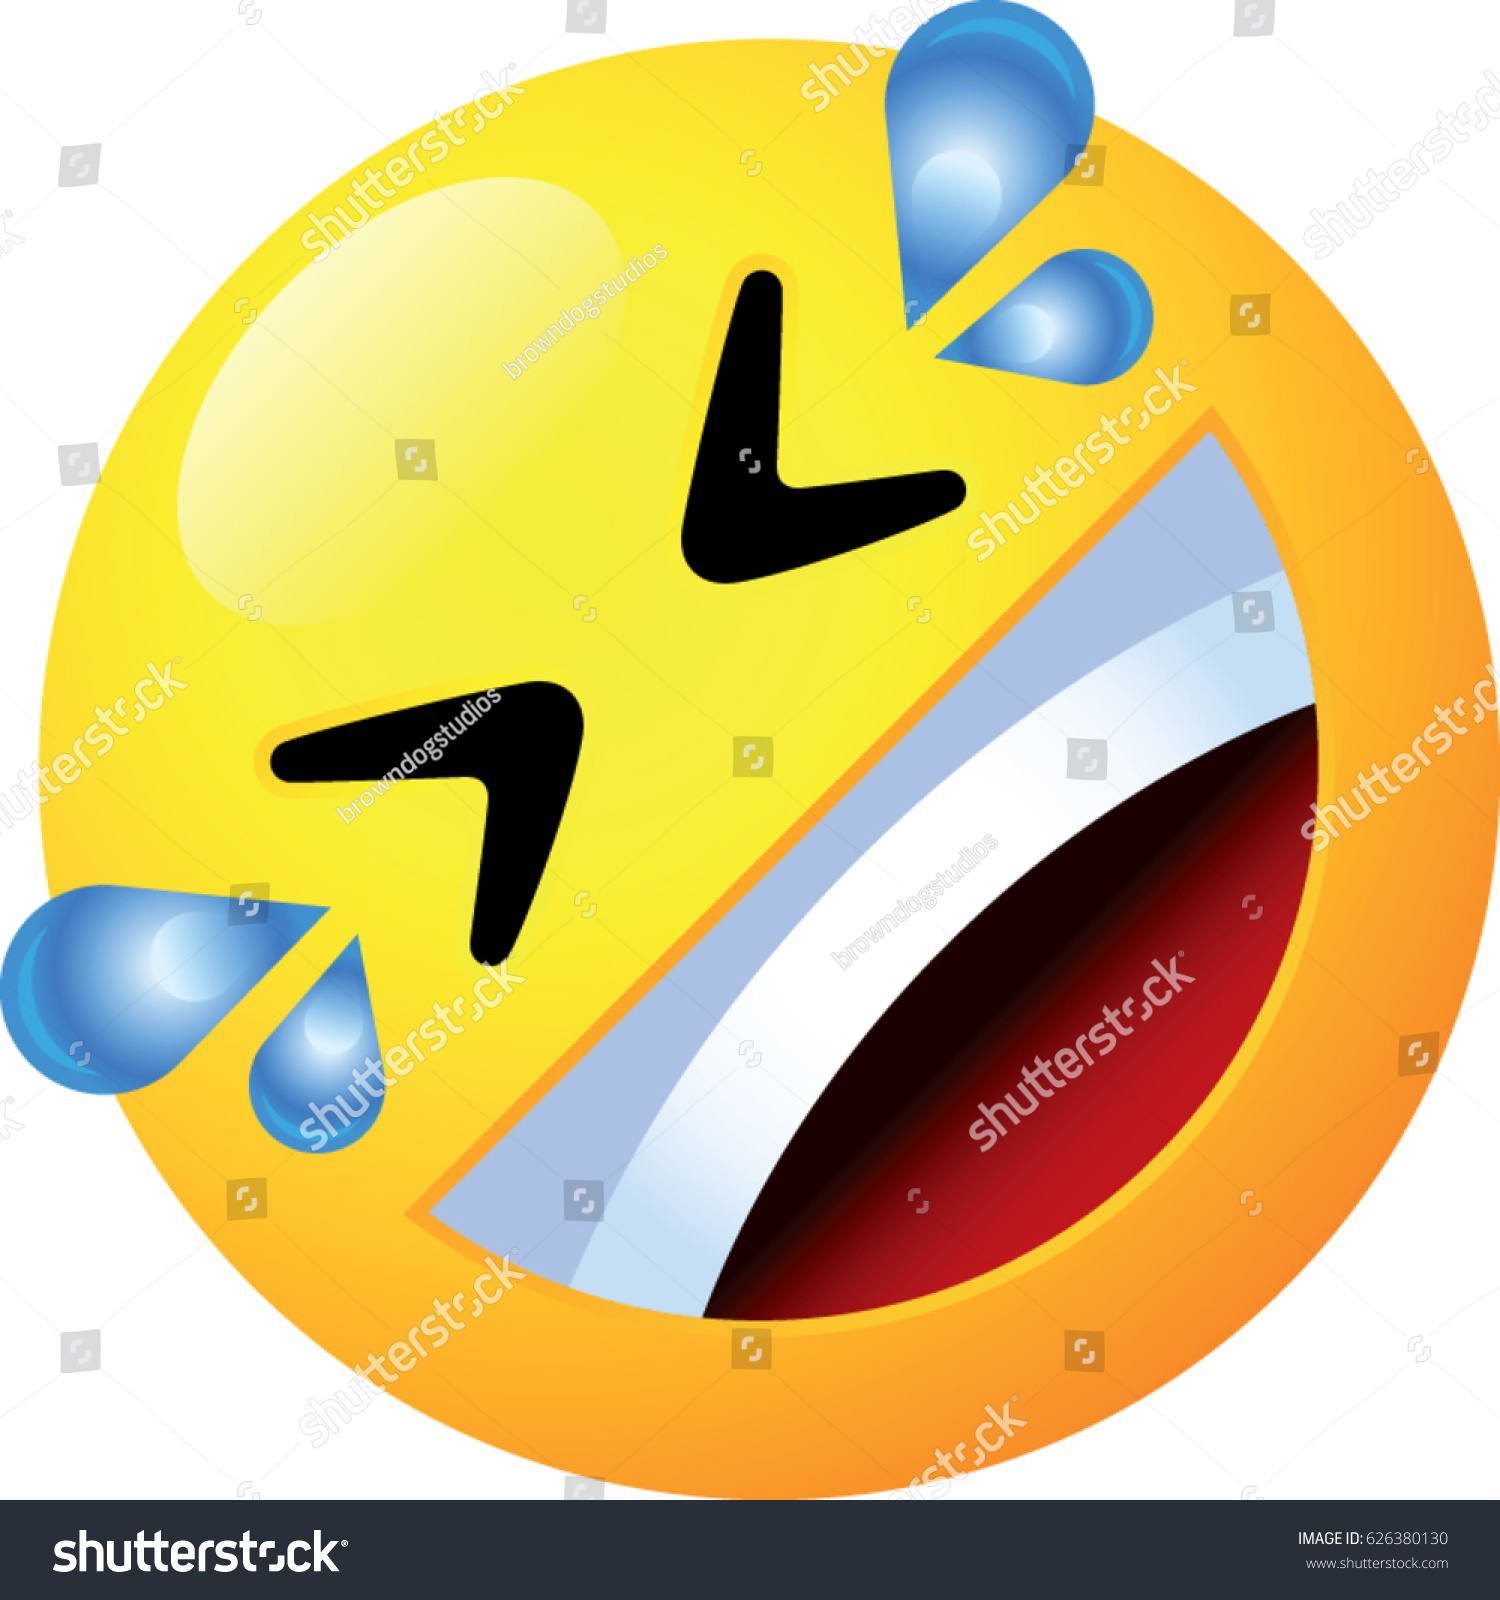 lmao emoji stock vector 626380130 shutterstock vector signboard free download road sign vector art